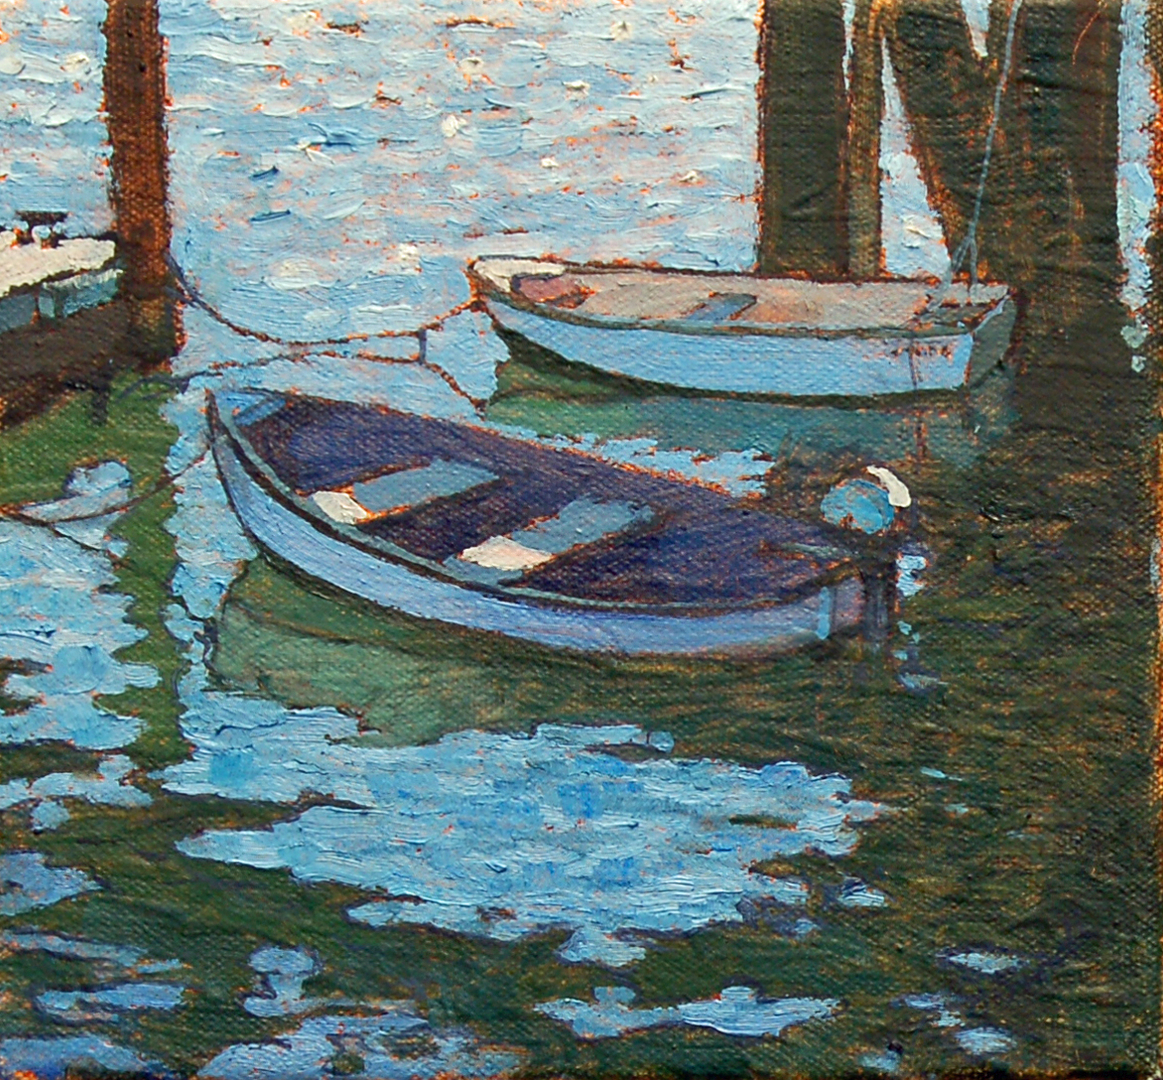 Jonathan Small, Two Dinghies